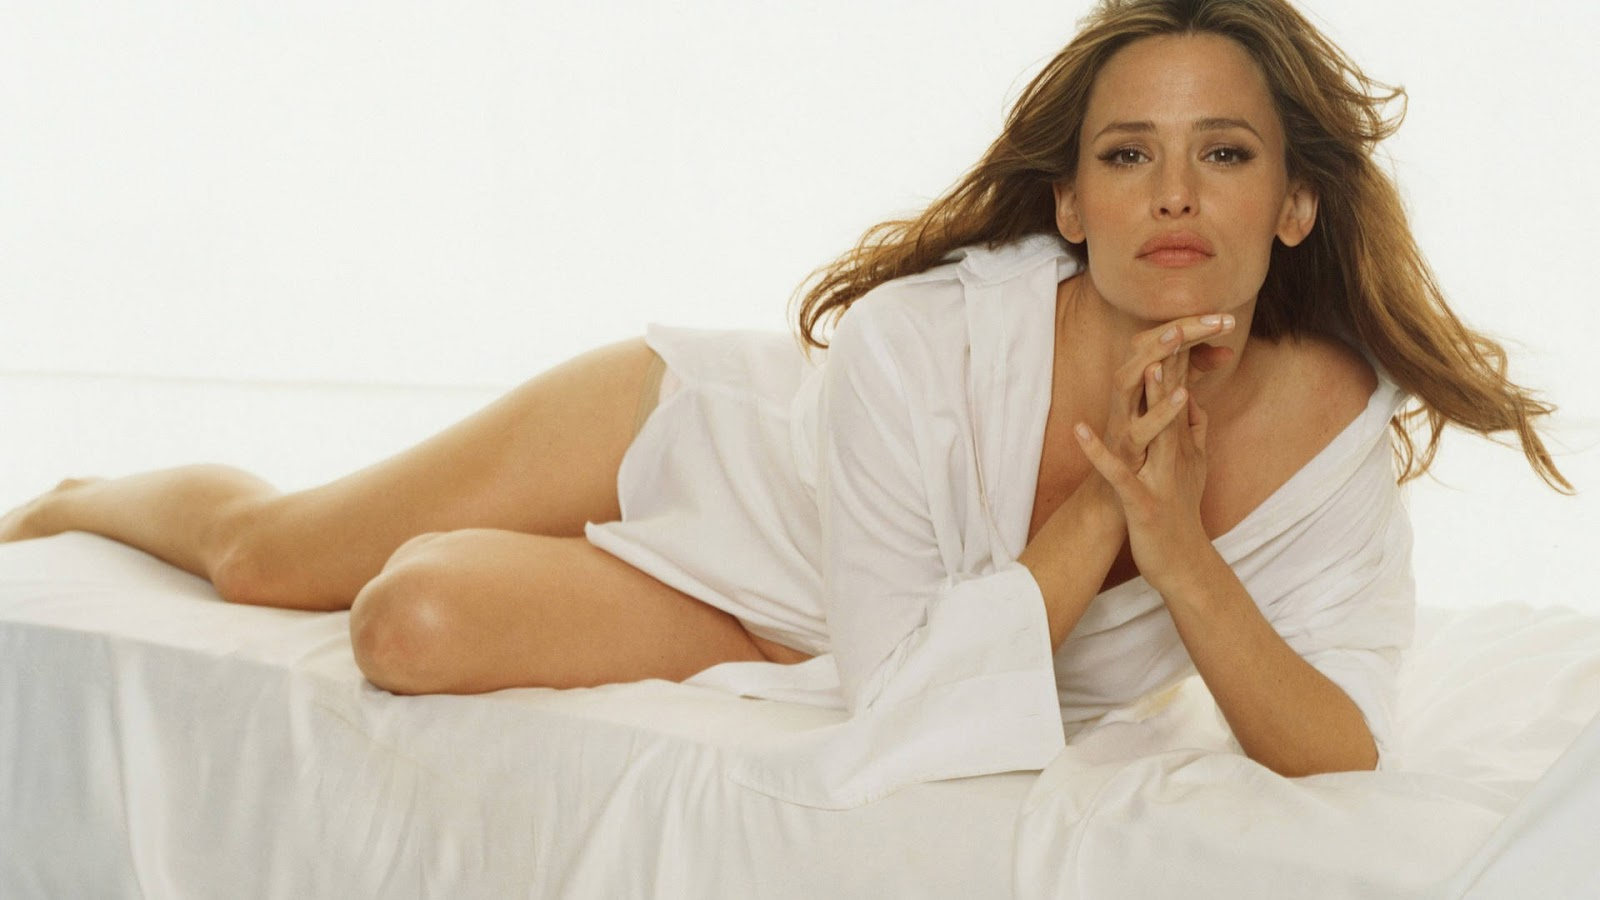 Jennifer Garner Feet